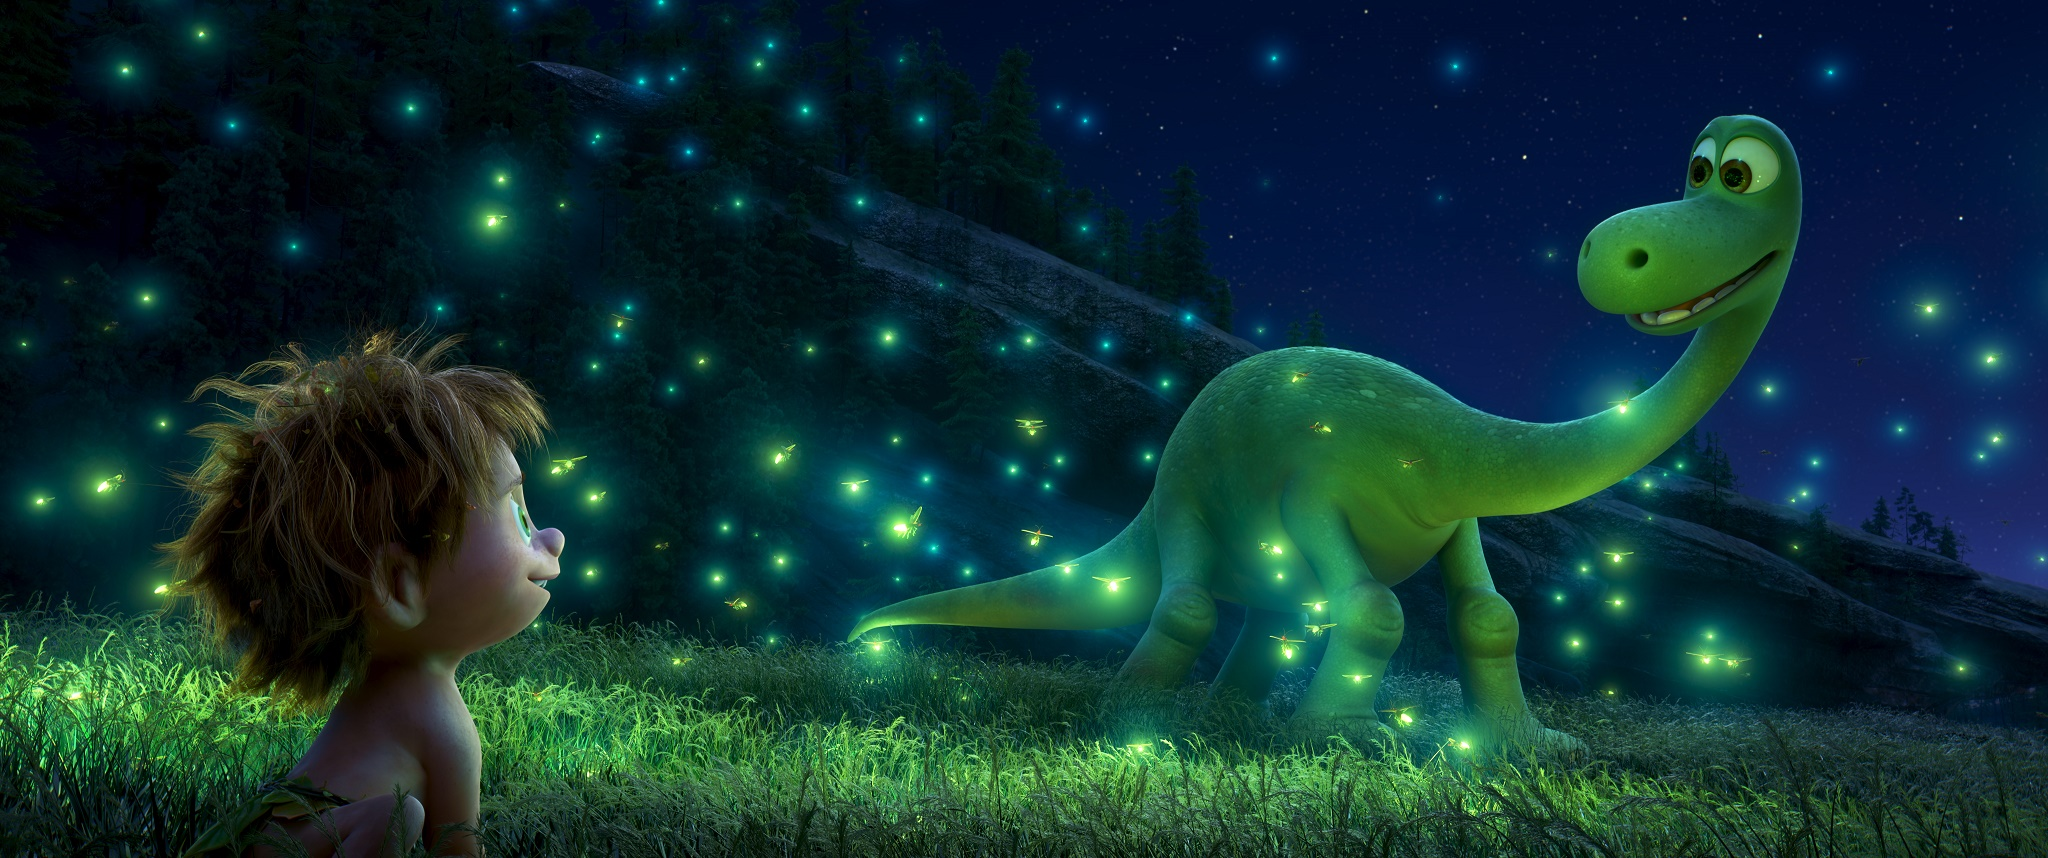 The-Good-Dinosaur-22ulho2015